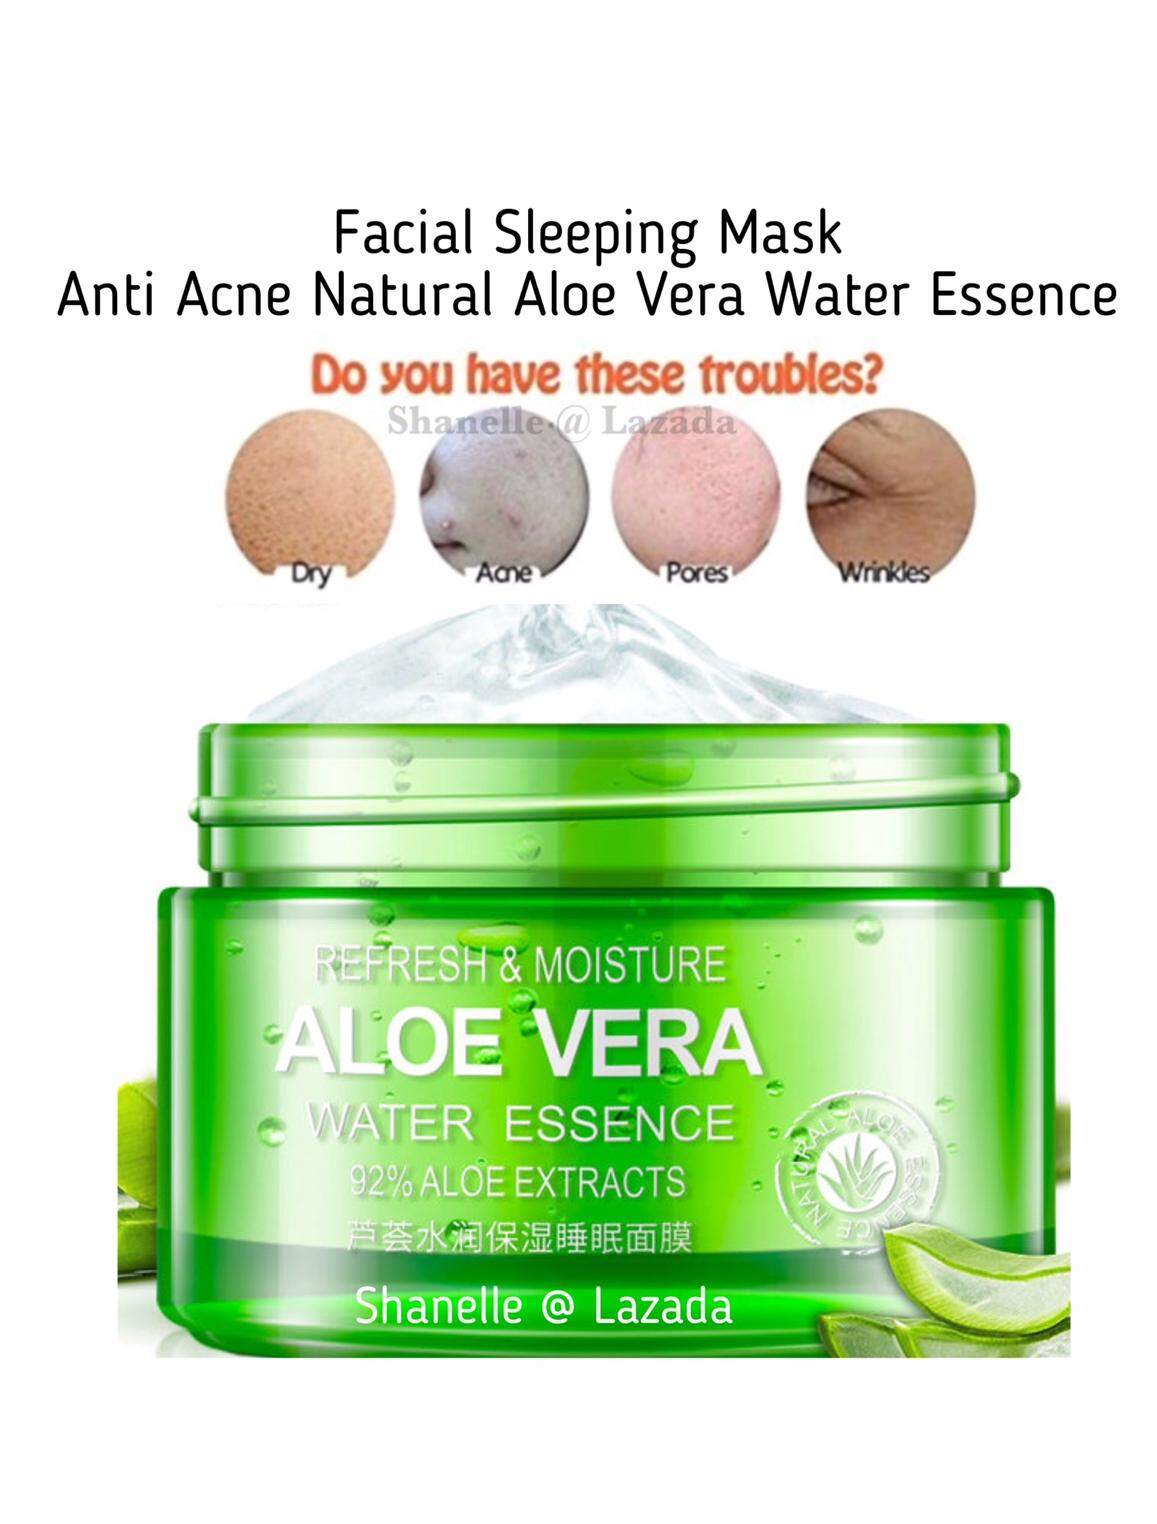 Anti Acne Mask Natural Aloe Vera Water Essence Sleeping Facial Mask Refresh Moisturizer Hydrating Whitening Deep Moisturizing Skin Acne Pimples Scars Sun Burn Men Women Face Care 100g By Shanelle.